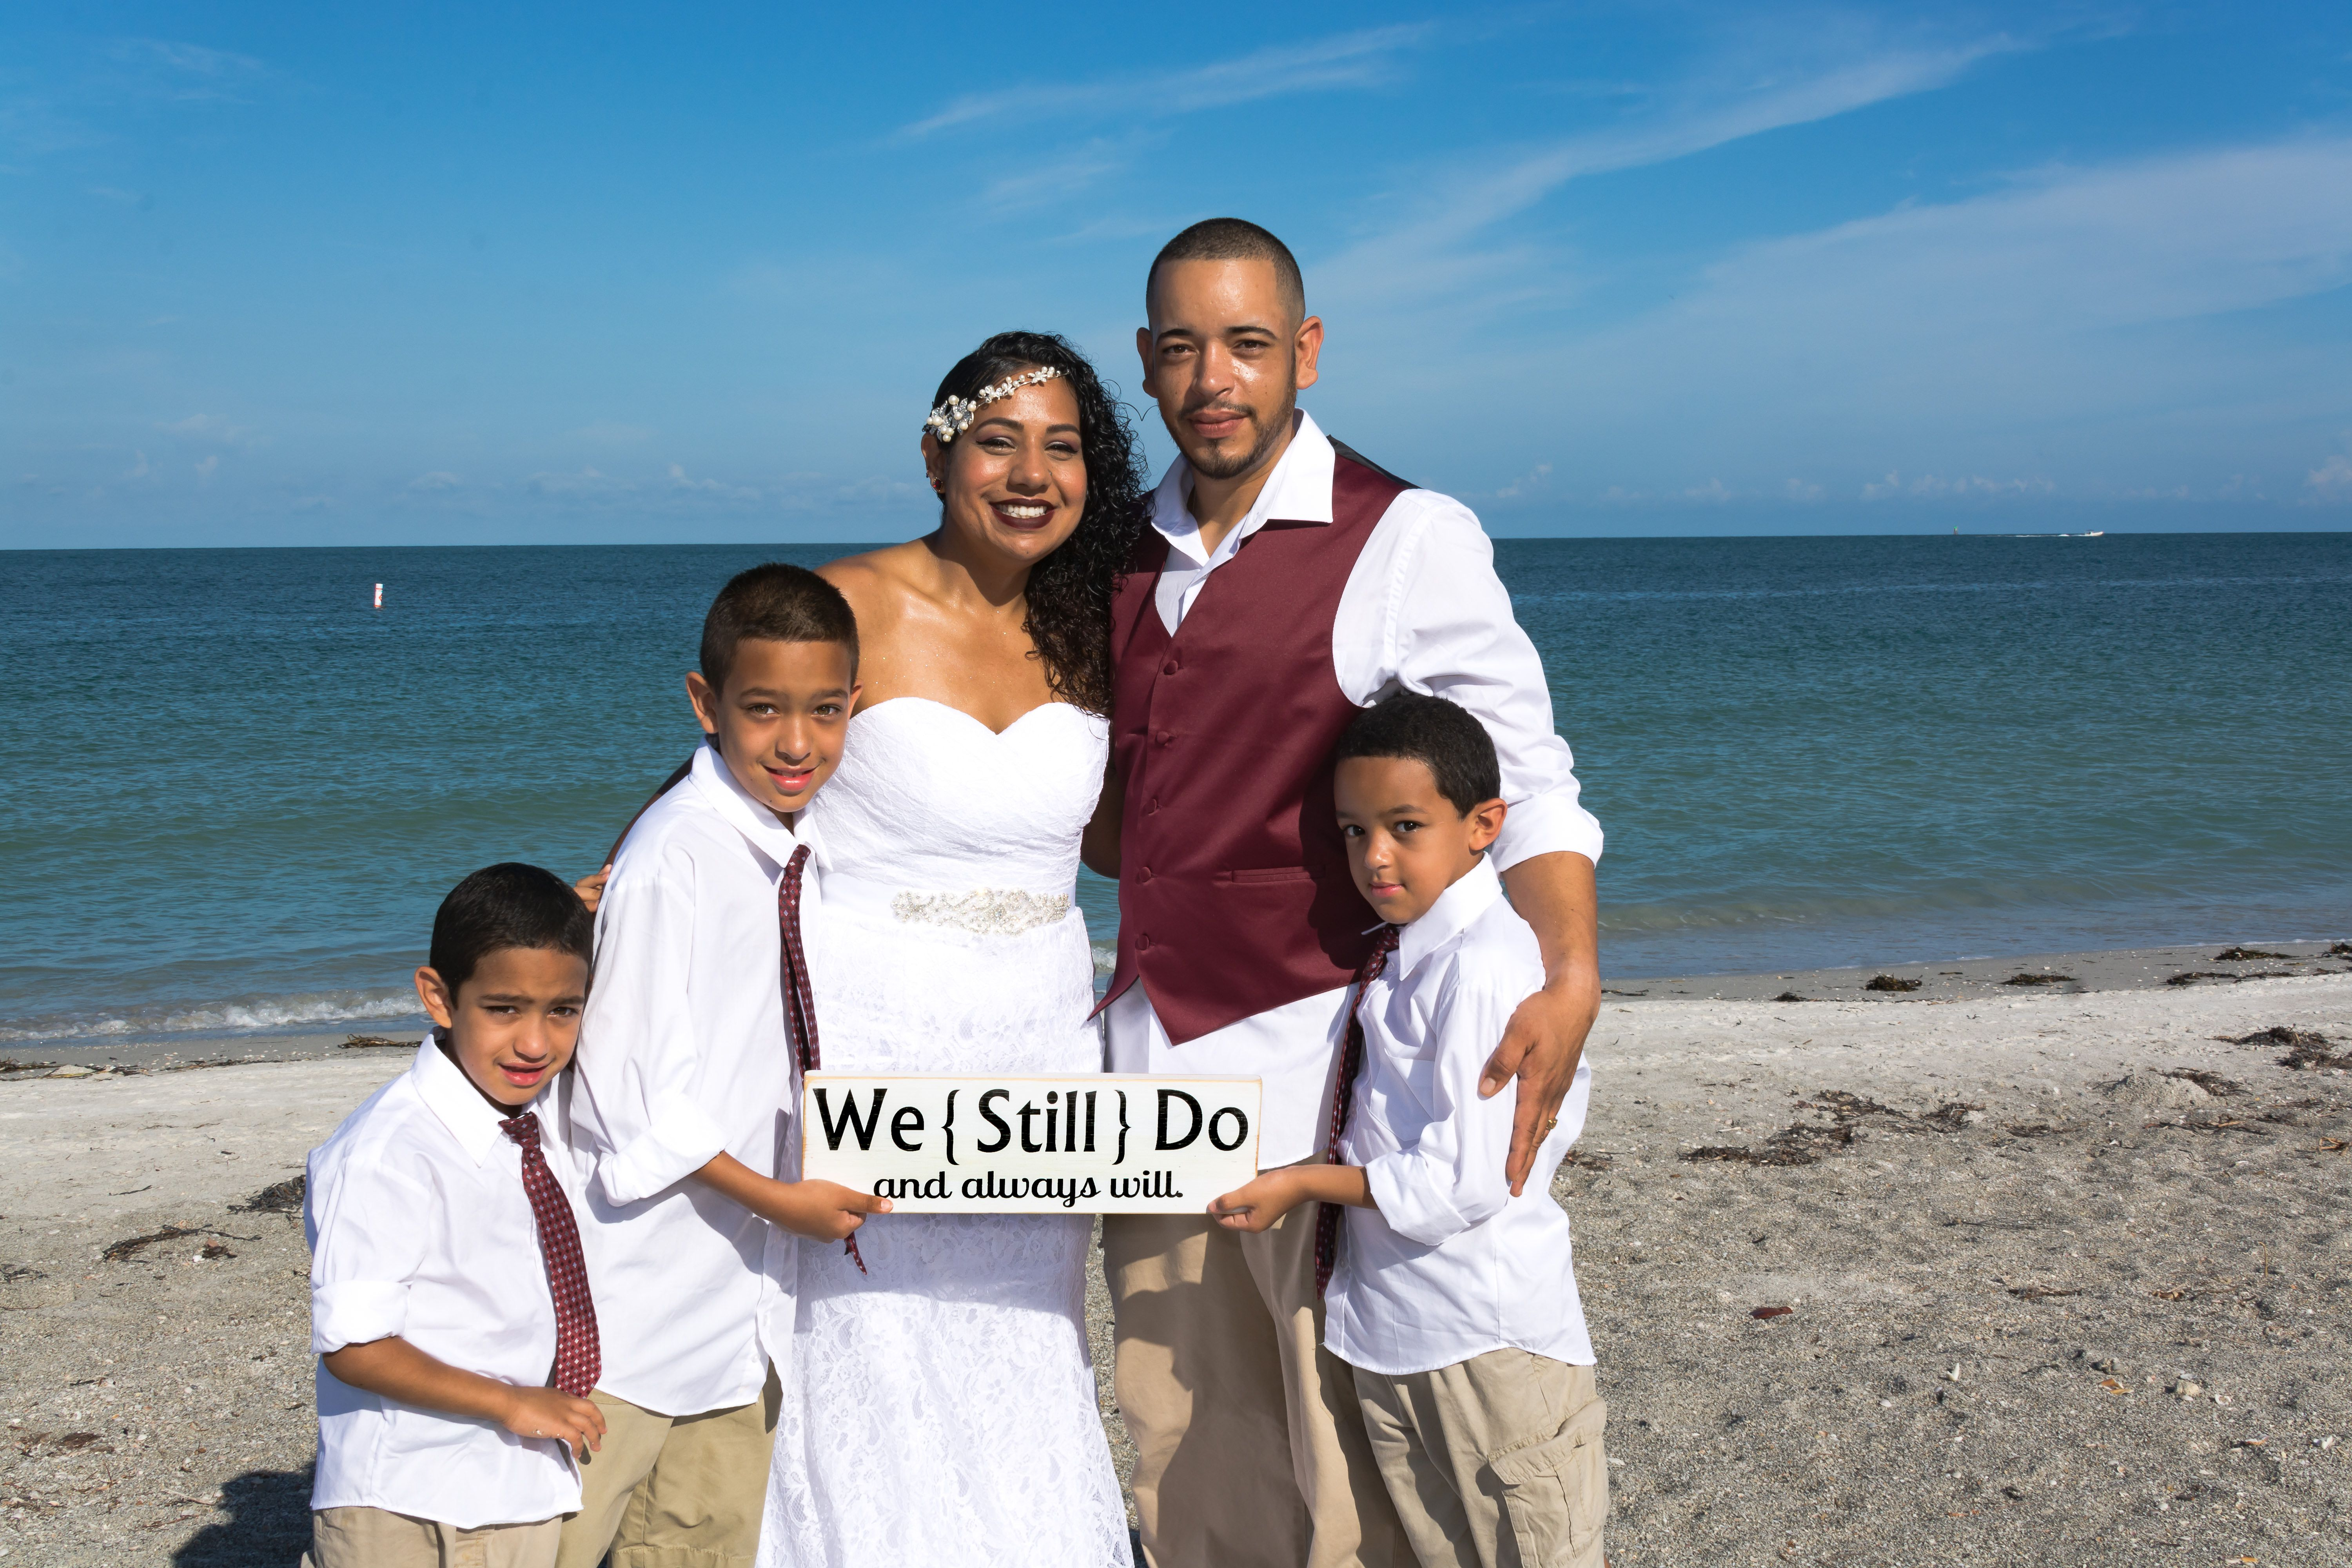 Beach Vow Renewal Ceremony: Anniversary Gift Idea- Wedding Anniversary Vow Renewal